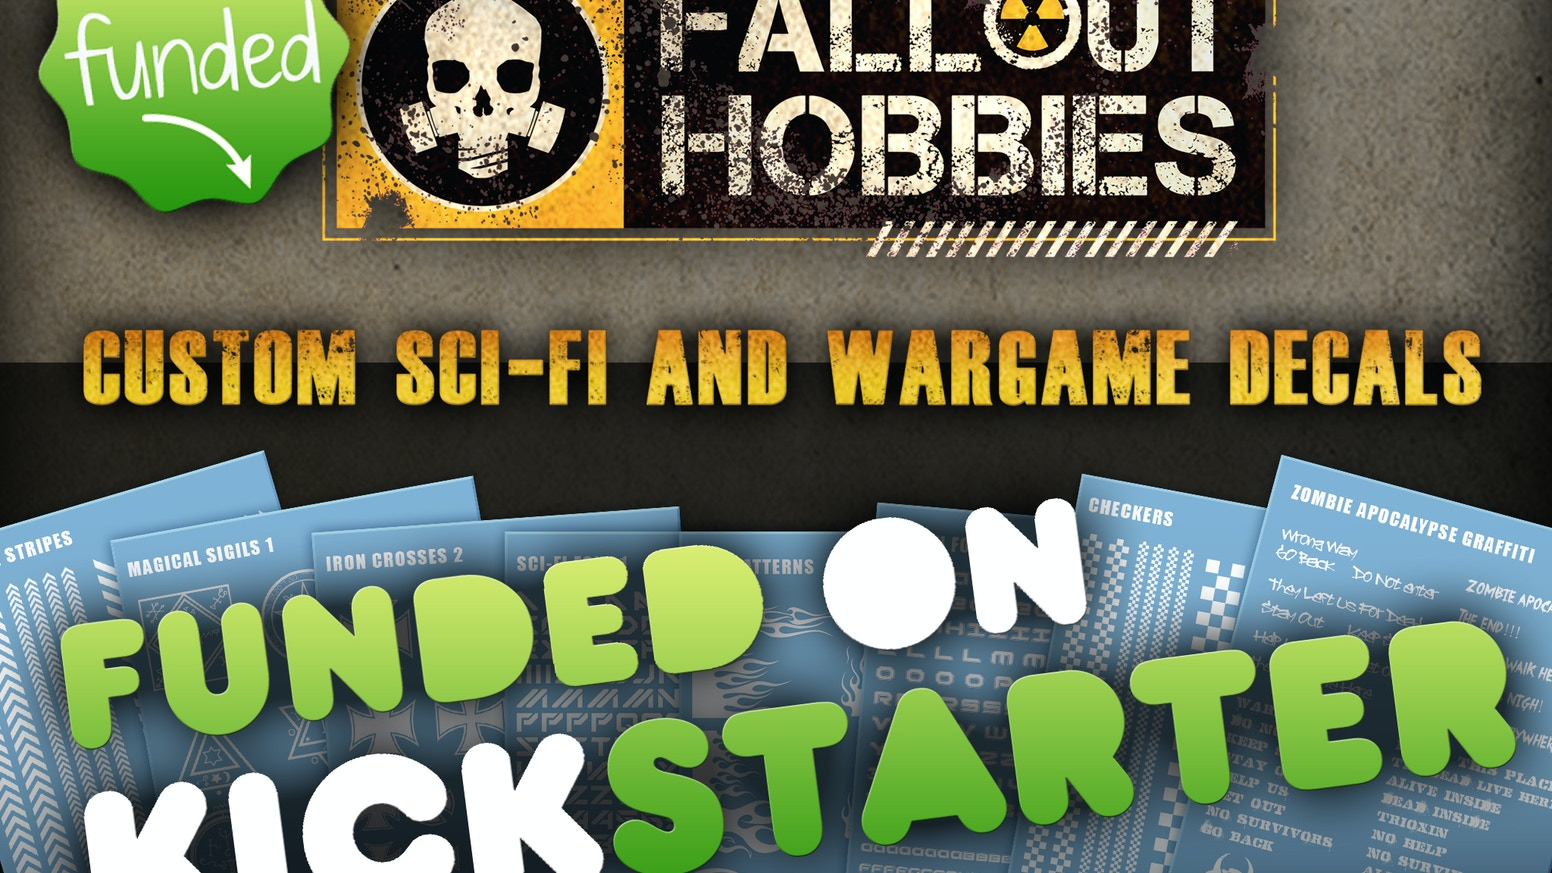 Fallout hobbies makes custom waterslide decals easy to order for Sci-Fi and Tabletop Wargame model enthusiasts.